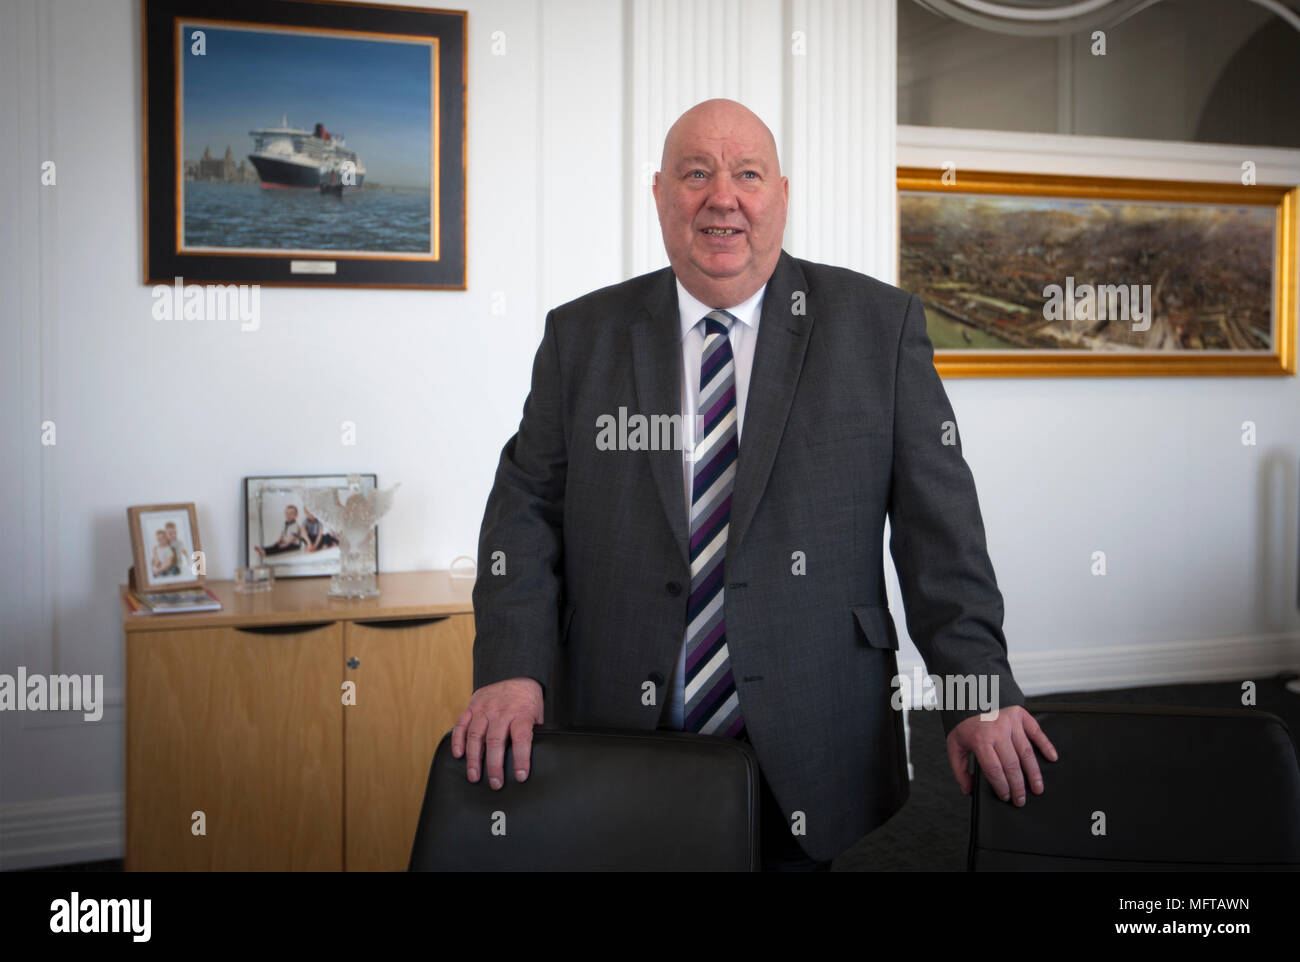 The Mayor of Liverpool, Cllr Joe Anderson, pictured in the mayor's Office within the Cunard Building in Liverpool. - Stock Image